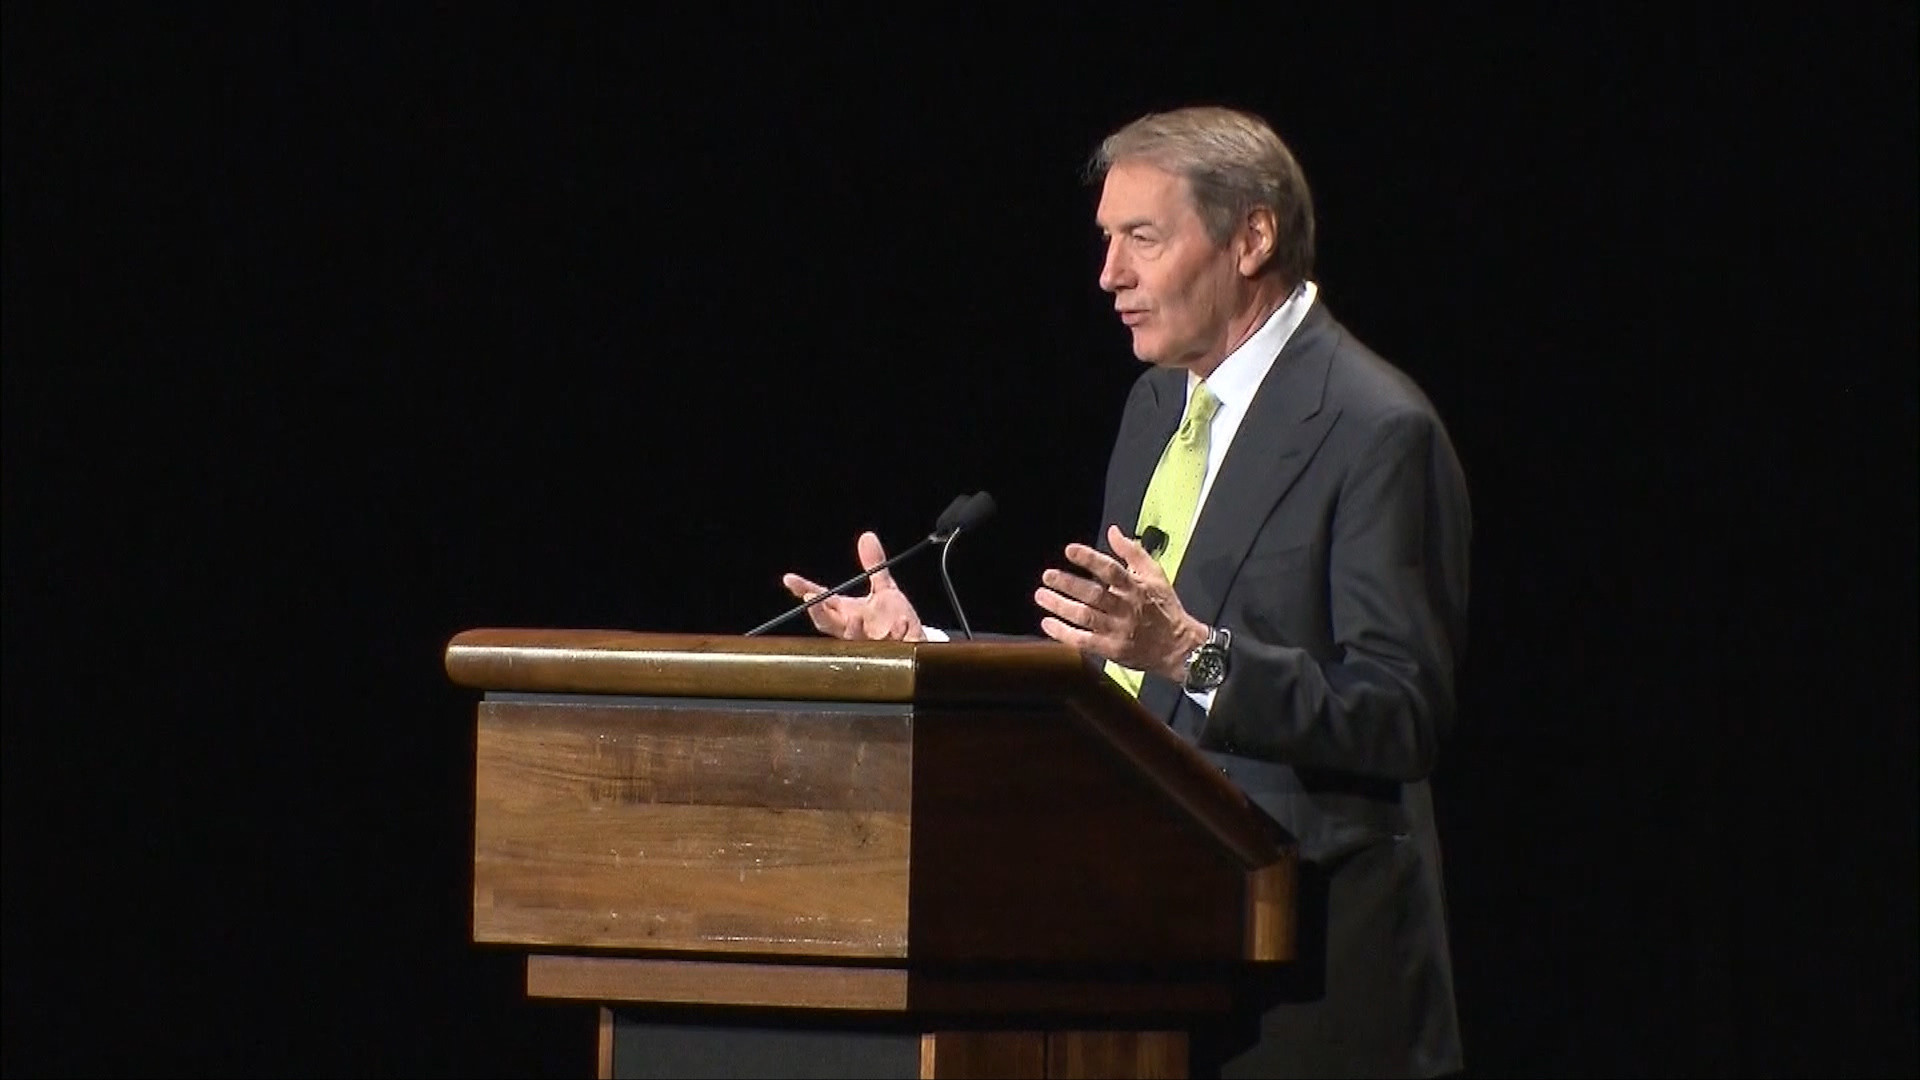 Charlie Rose Fired Cbs Pbs After >> Charlie Rose fired by CBS over sexual harassment allegations - Hoy